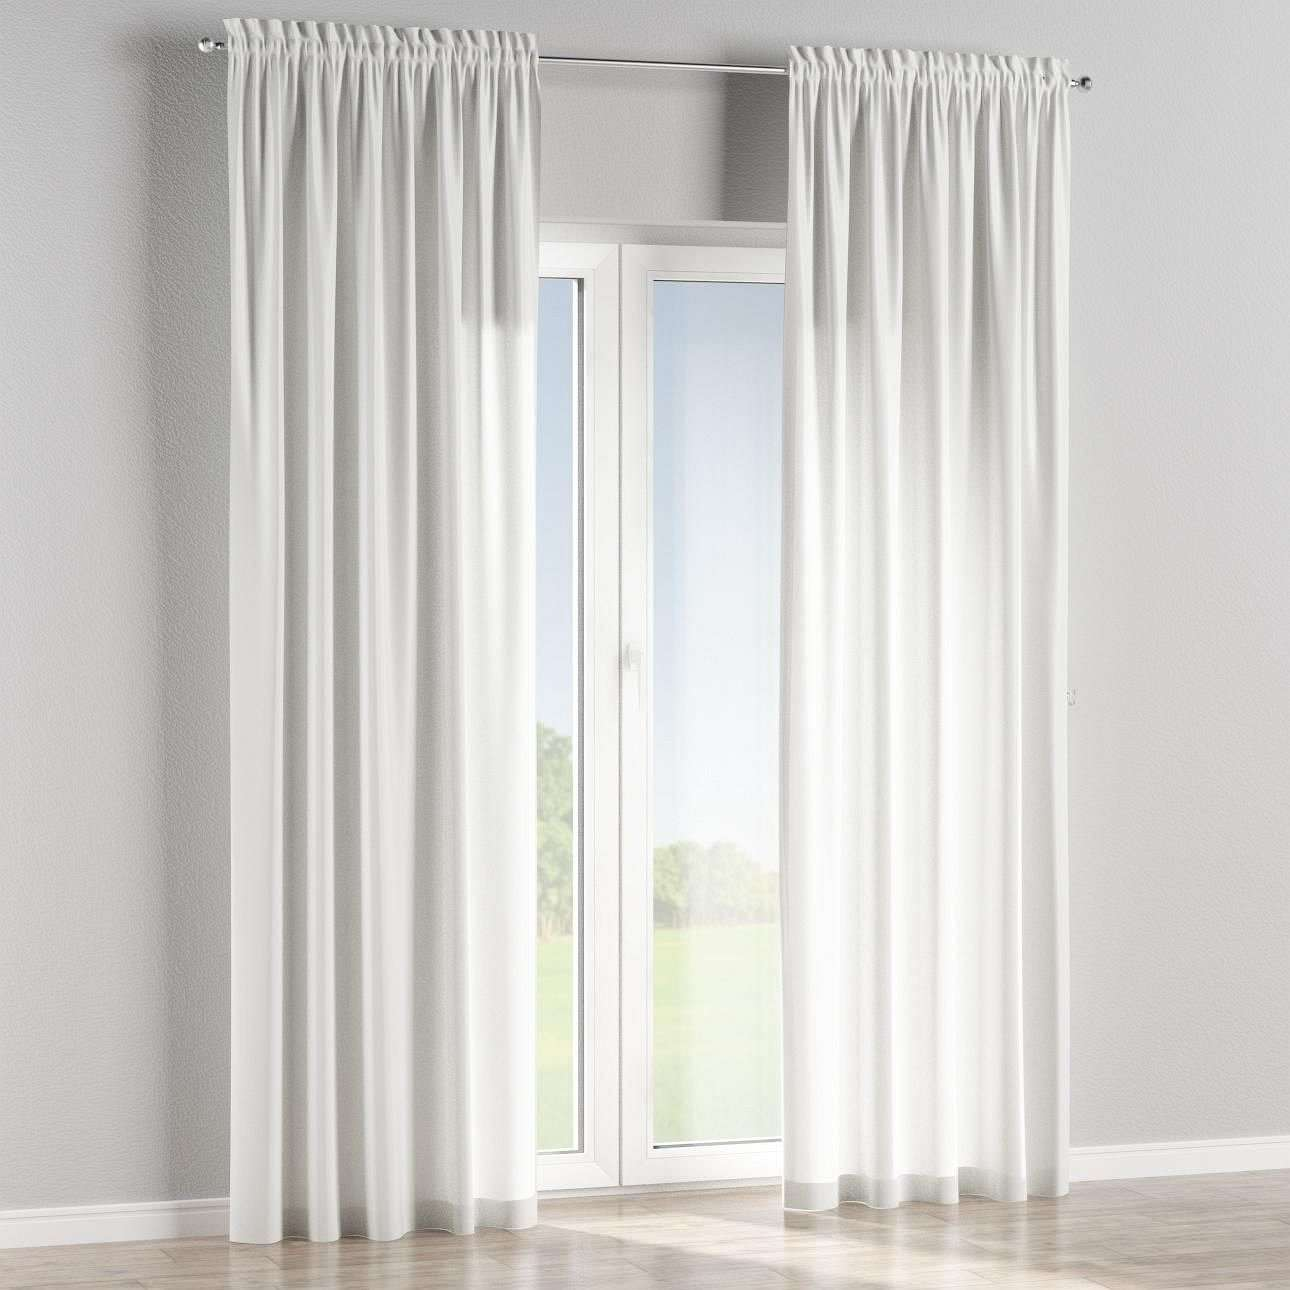 Slot and frill lined curtains in collection Monet, fabric: 140-06